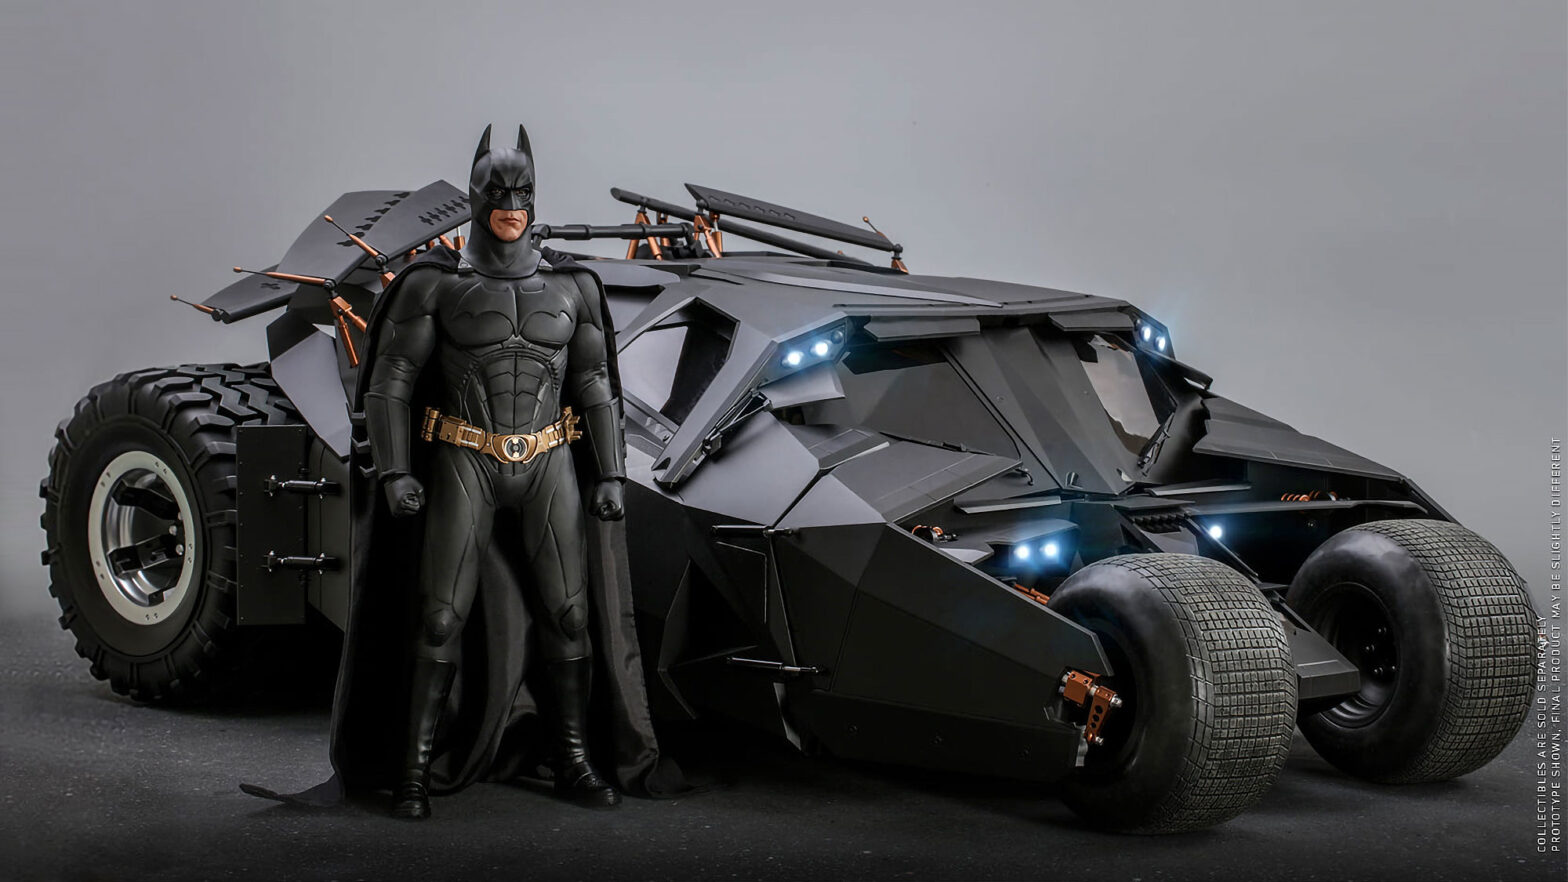 Hot Toys Batman Begins Batman and Batmobile